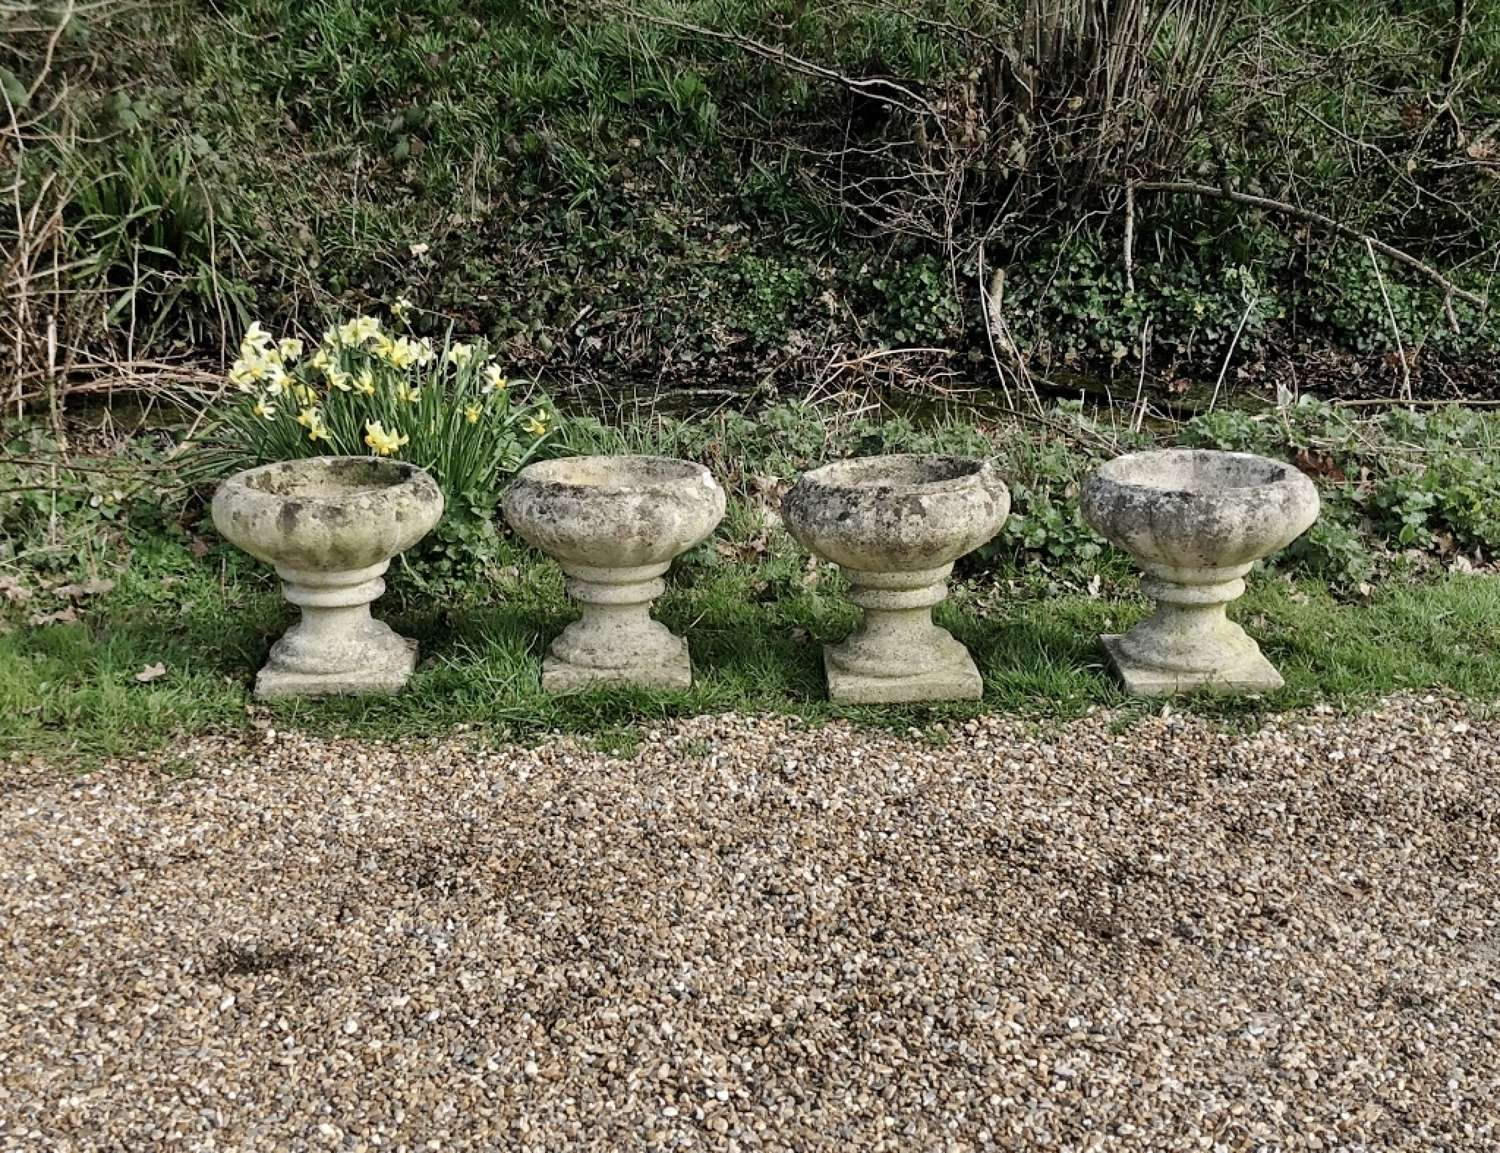 A Set of 4 Small Urns